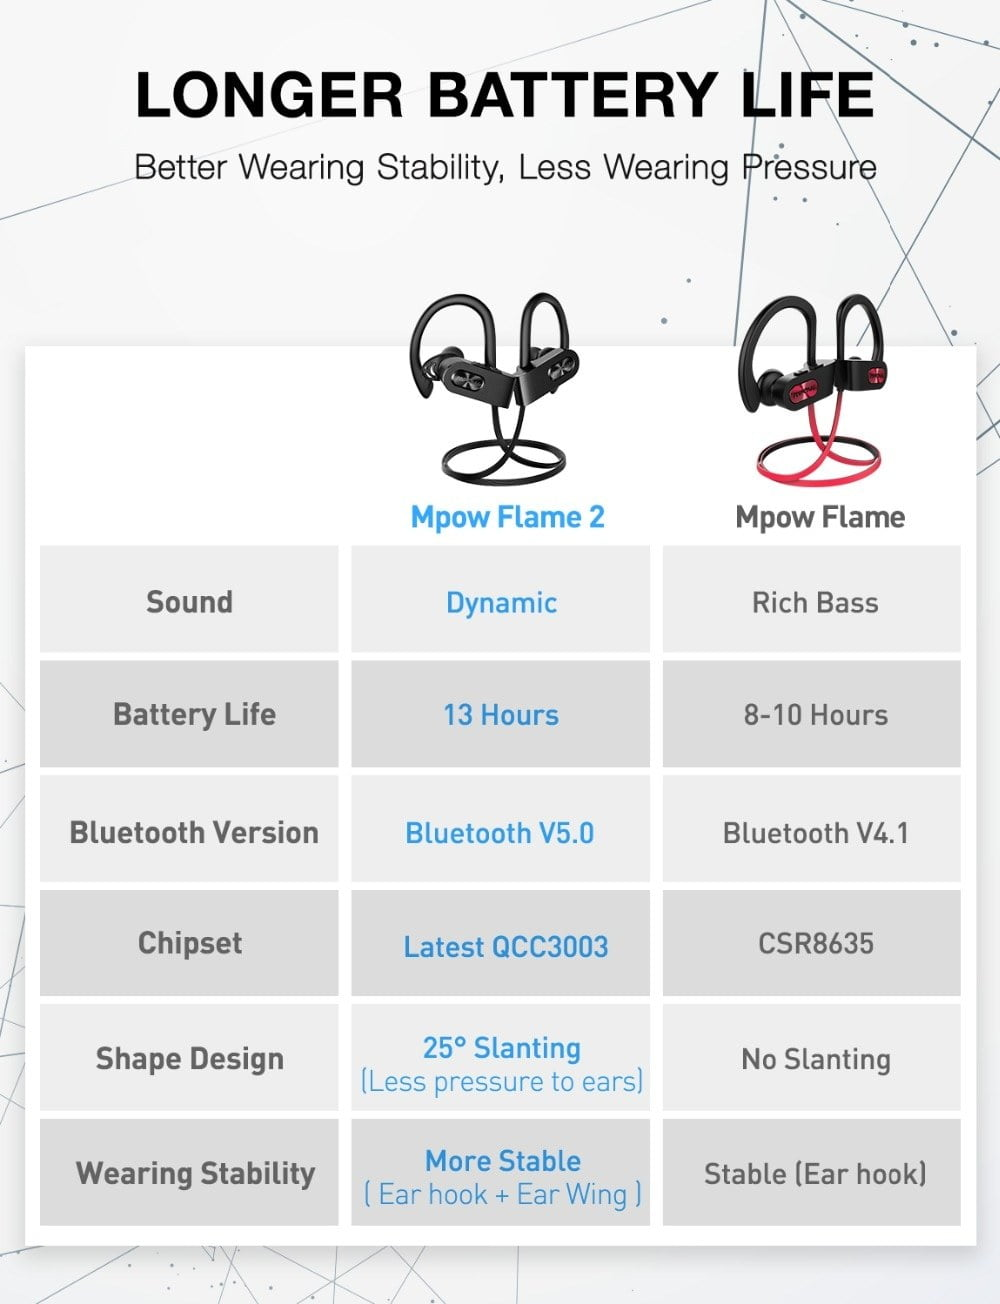 Mpow Flame 2 ipx7 Waterproof 13H Playback Bluetooth 5.0 Sports Earphone CVC6.0 Noise Cancelling For iPhone Samsung Huawei Xiaomi